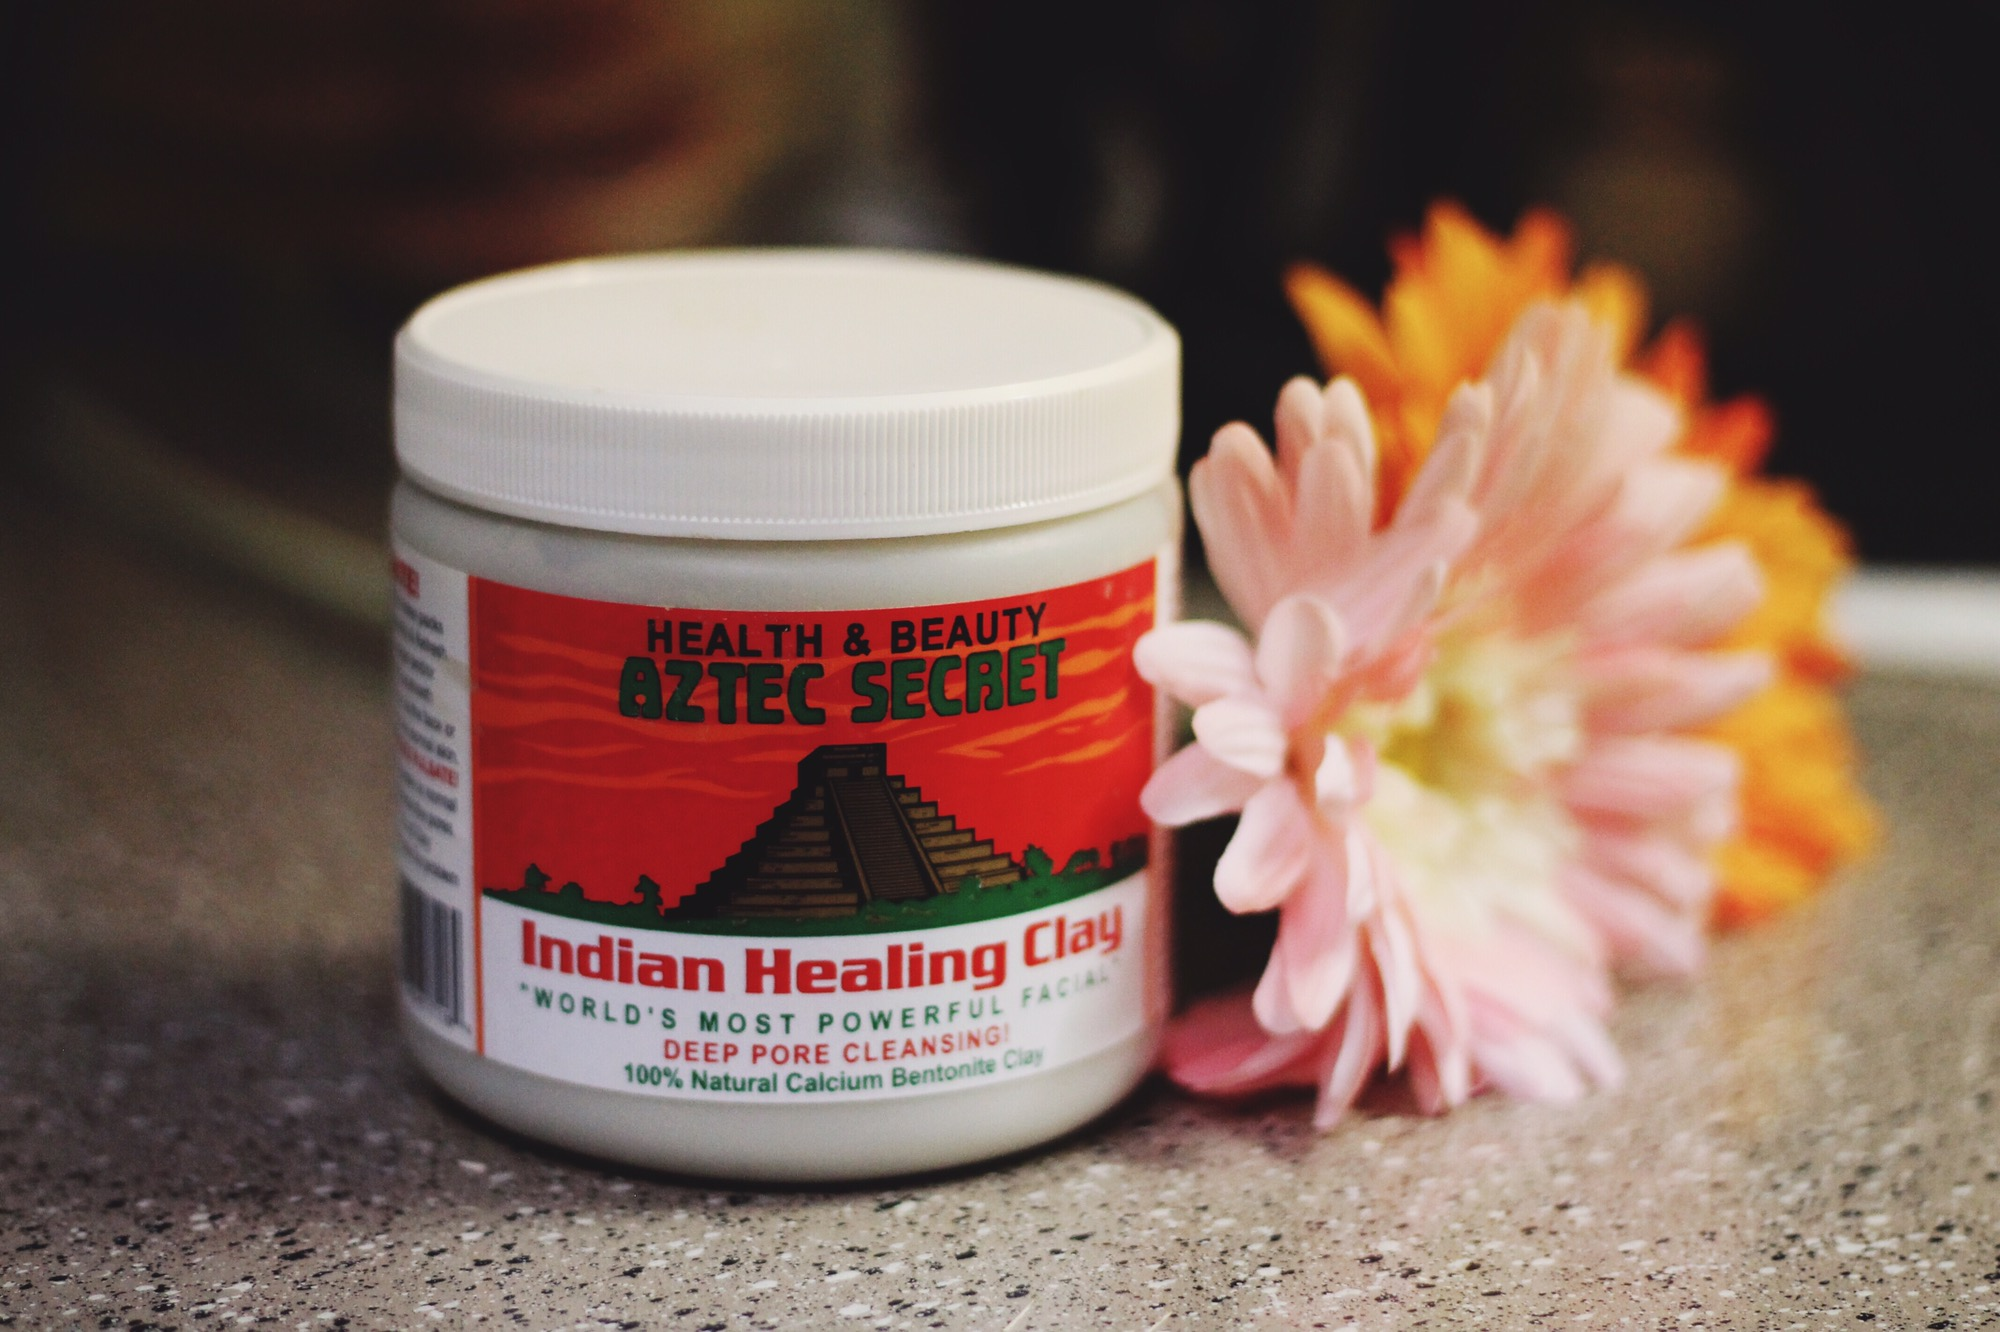 Clay as a Skin Healing and Beauty Regimen for your Face and Body